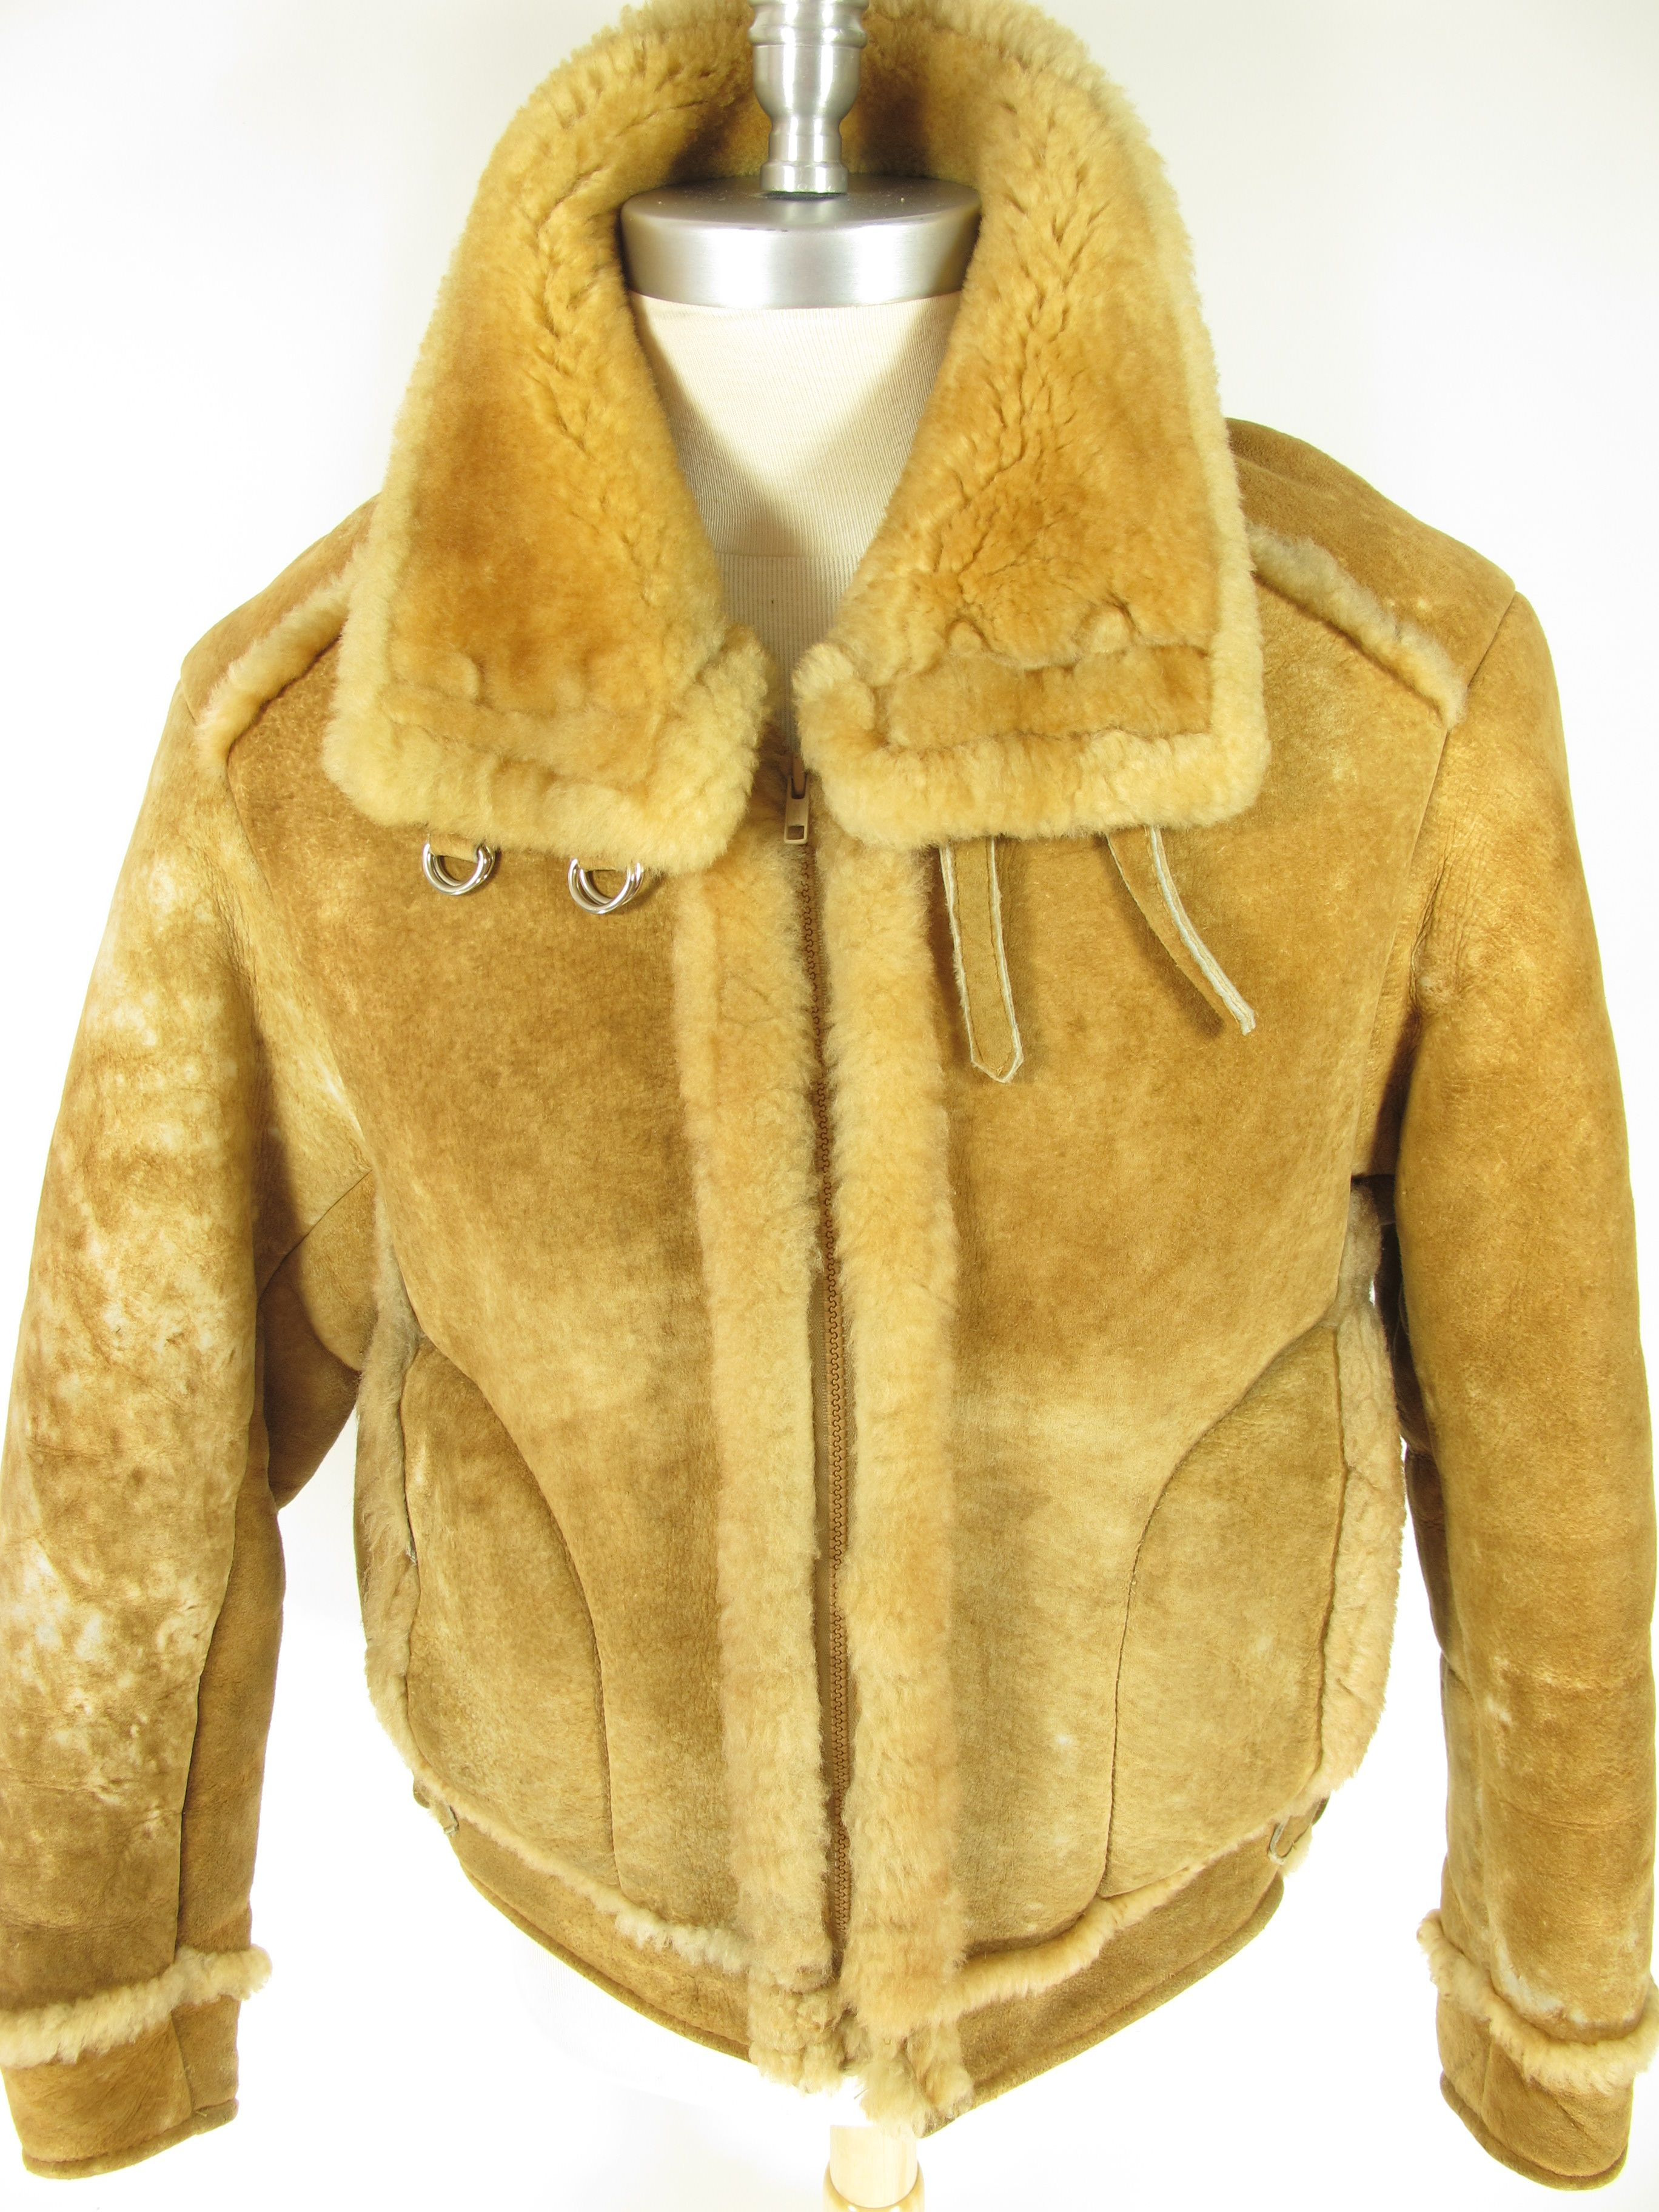 e1e5759c5 This is an interesting type of B-3 bomber jacket with its light tan ...